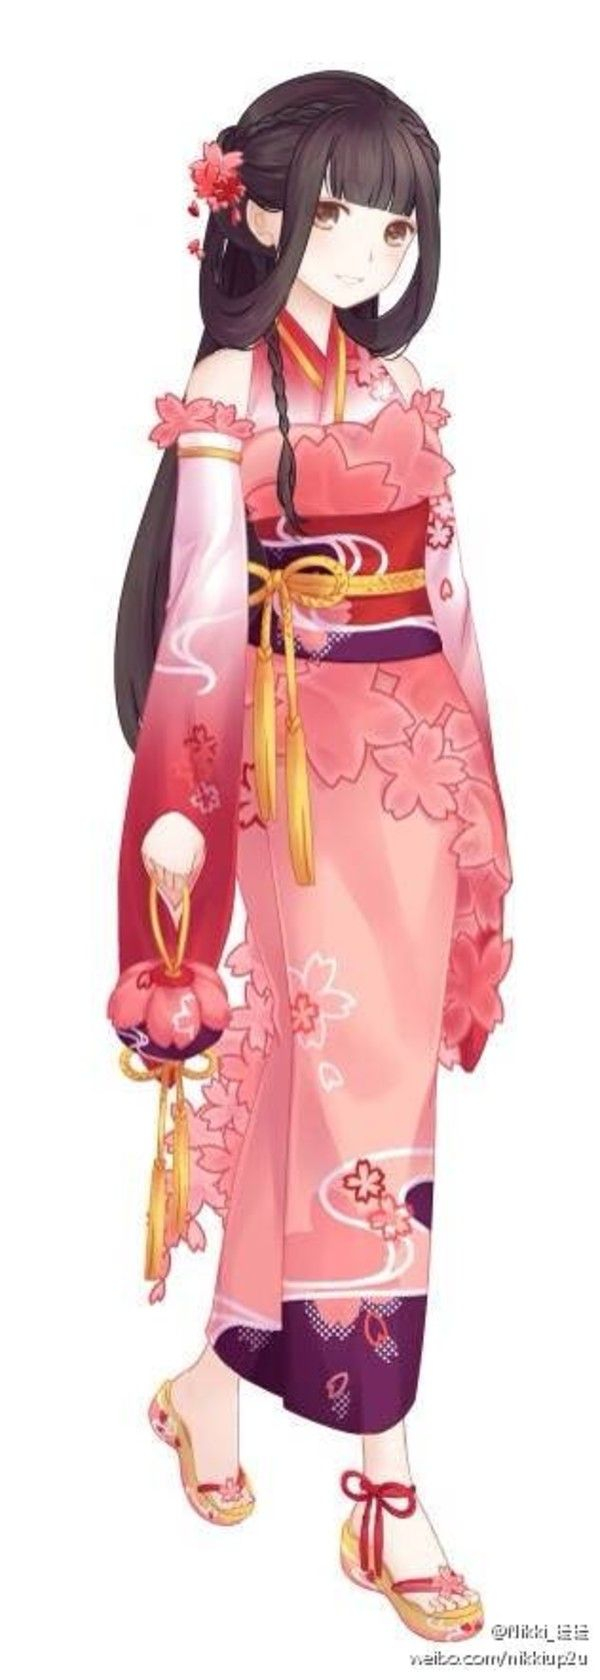 Anime Characters Kimono : Ideas about anime girl drawings on pinterest